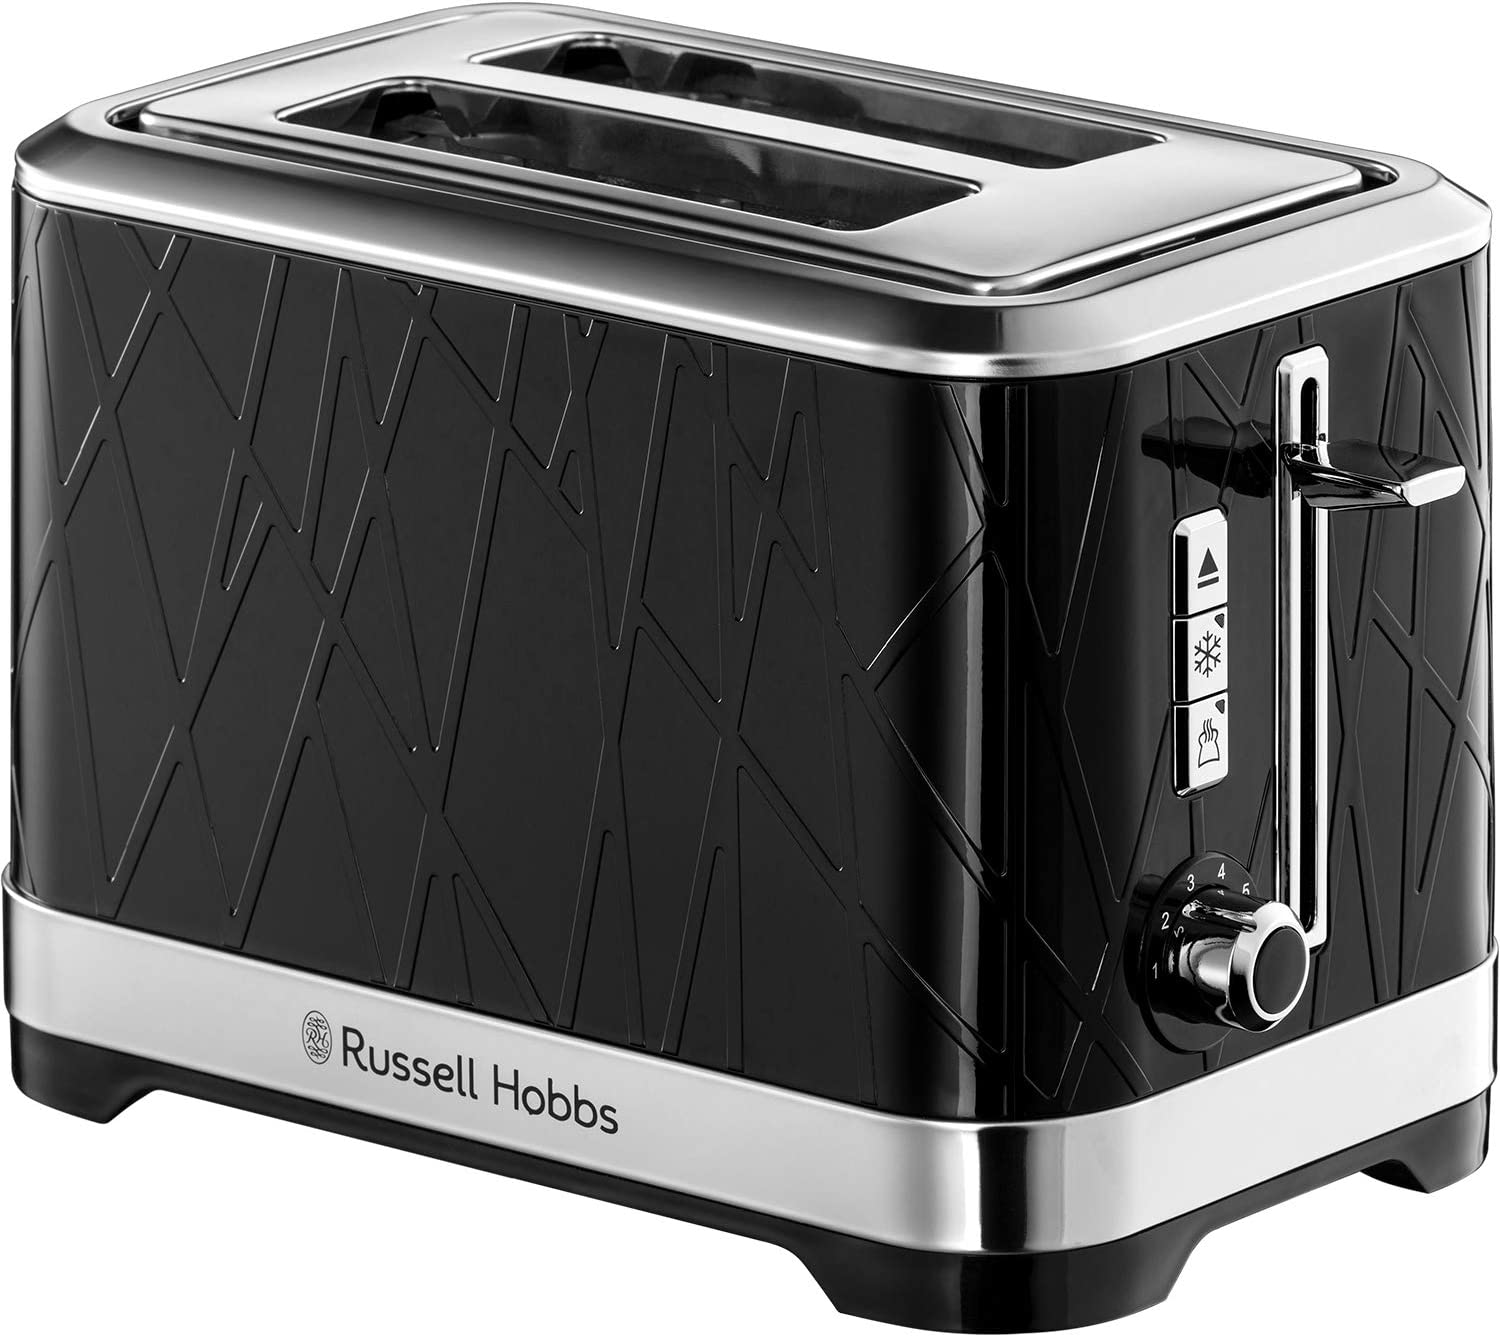 Russell Hobbs 28091 Structure Toaster, 2 Slice - Contemporary Design Featuring Lift and Look with Frozen, Cancel and Reheat Settings, Black